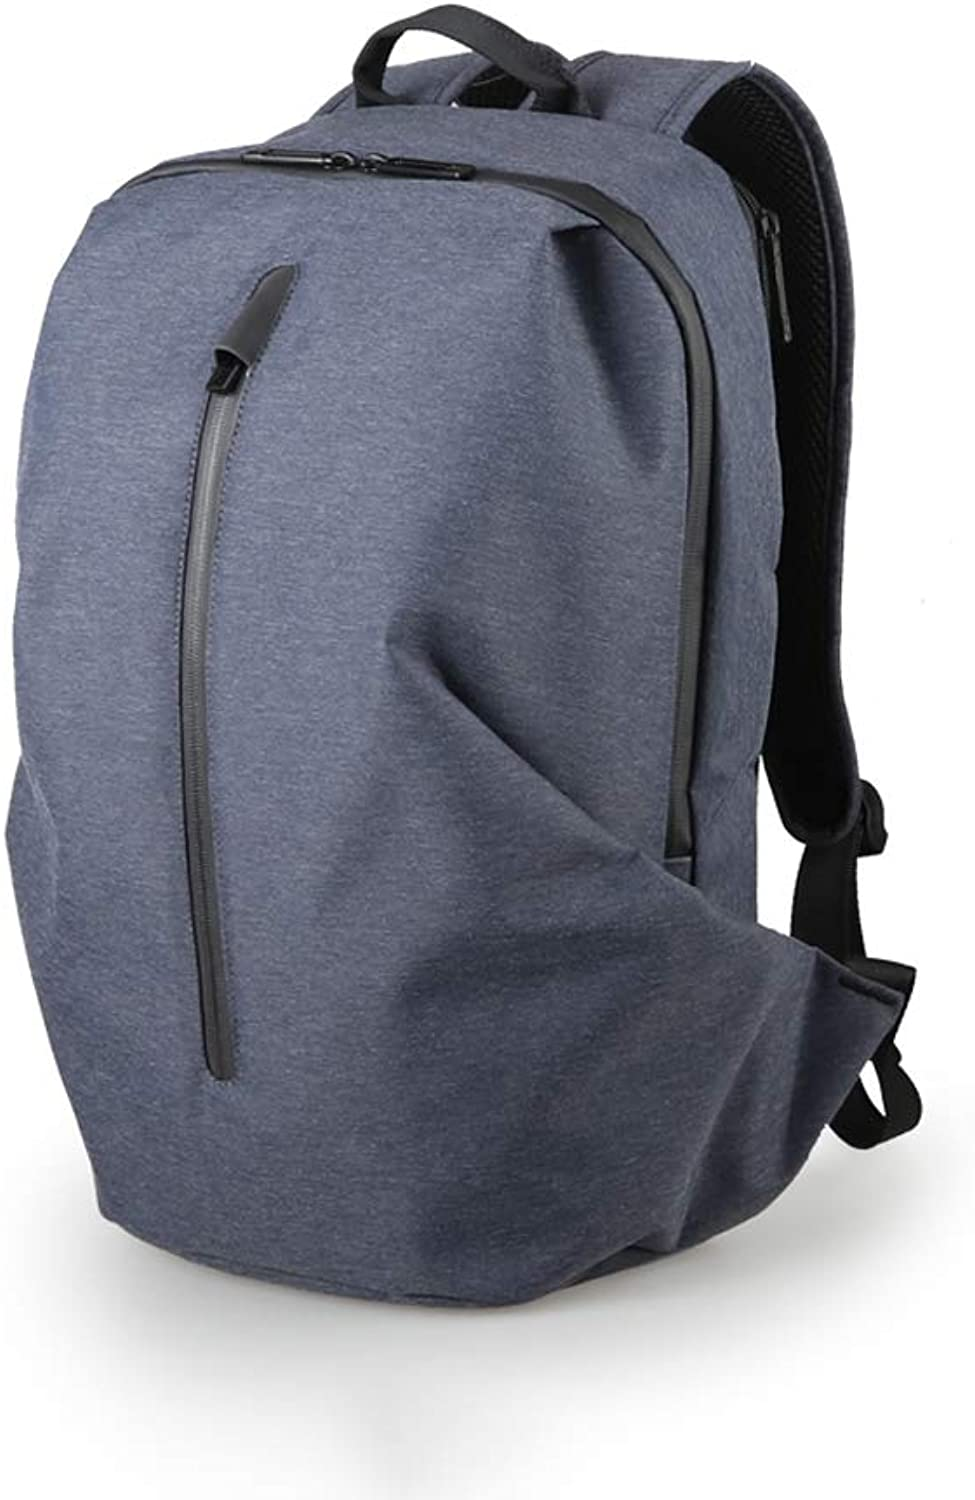 HUACANG Travel Backpack, Lightweight Business Sports Backpack Breathable Lightweight Student Backpack Can Accommodate 14in Laptop (color   bluee)